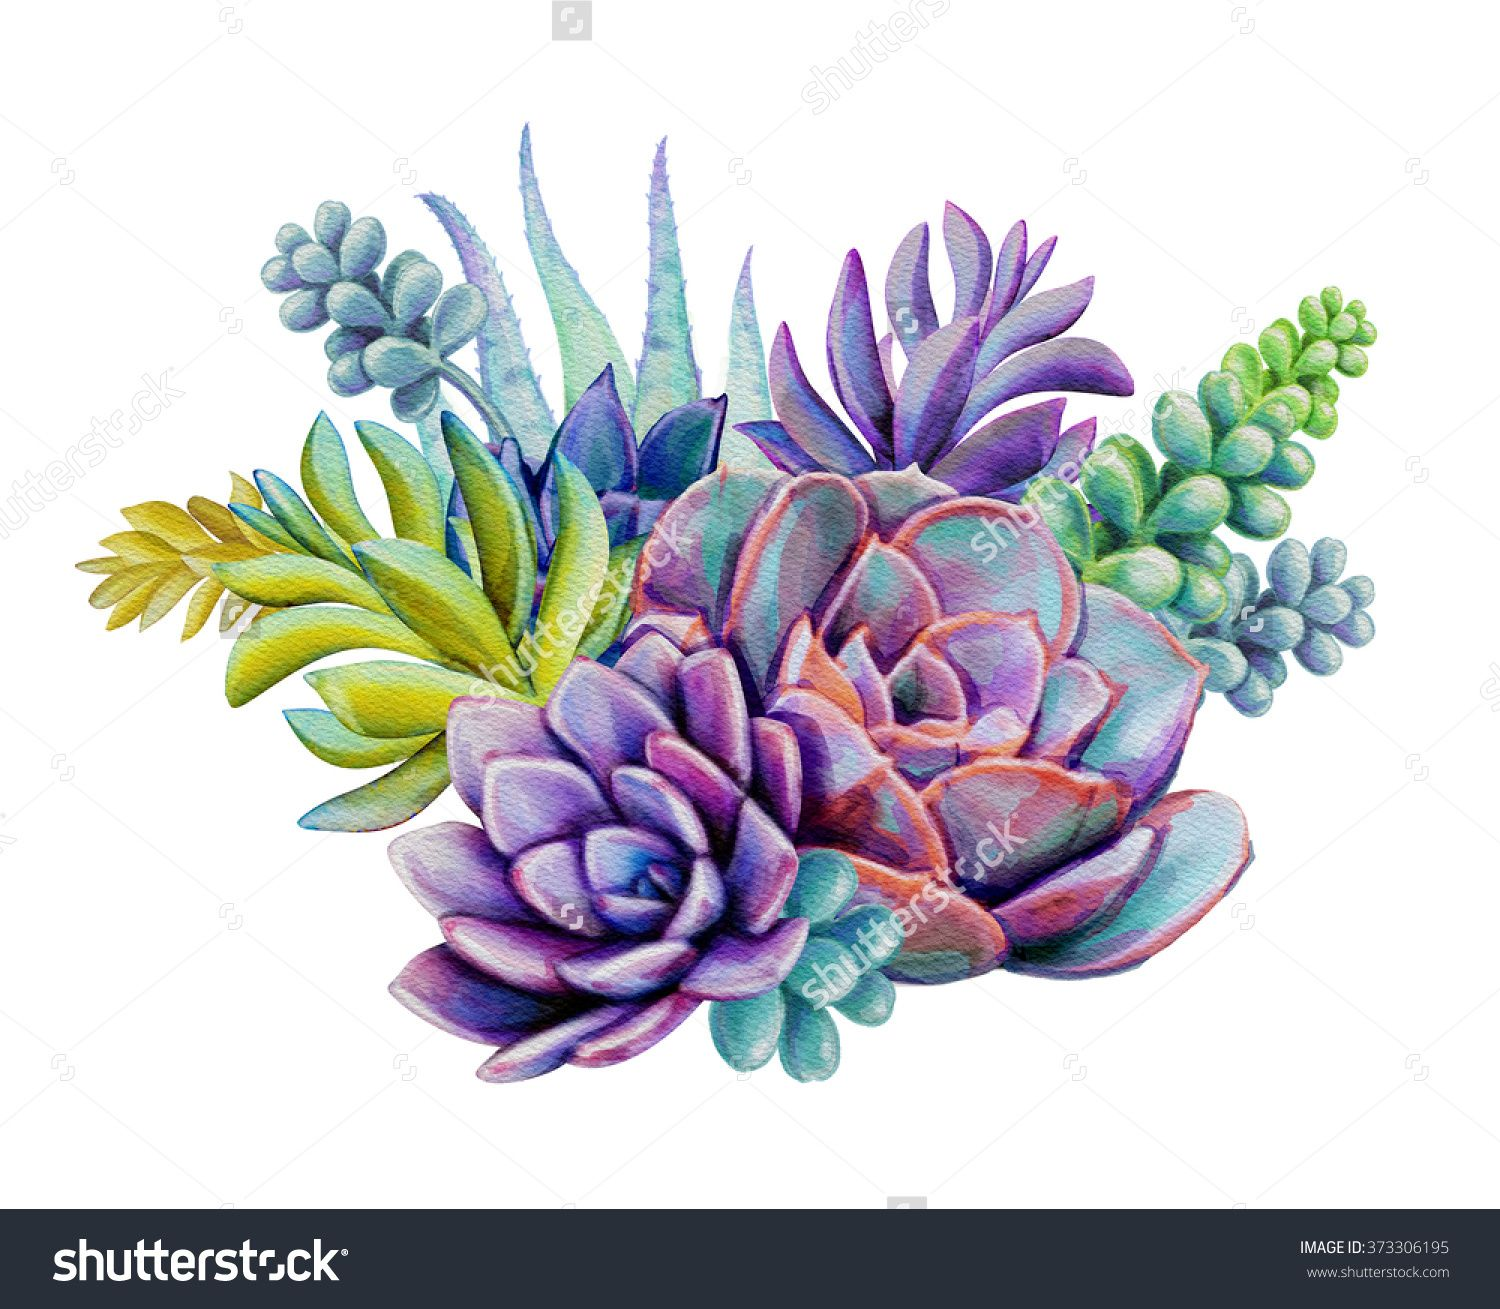 Watercolor Succulent Plants Composition Floral Bouquet Illustration Isolated On White Background